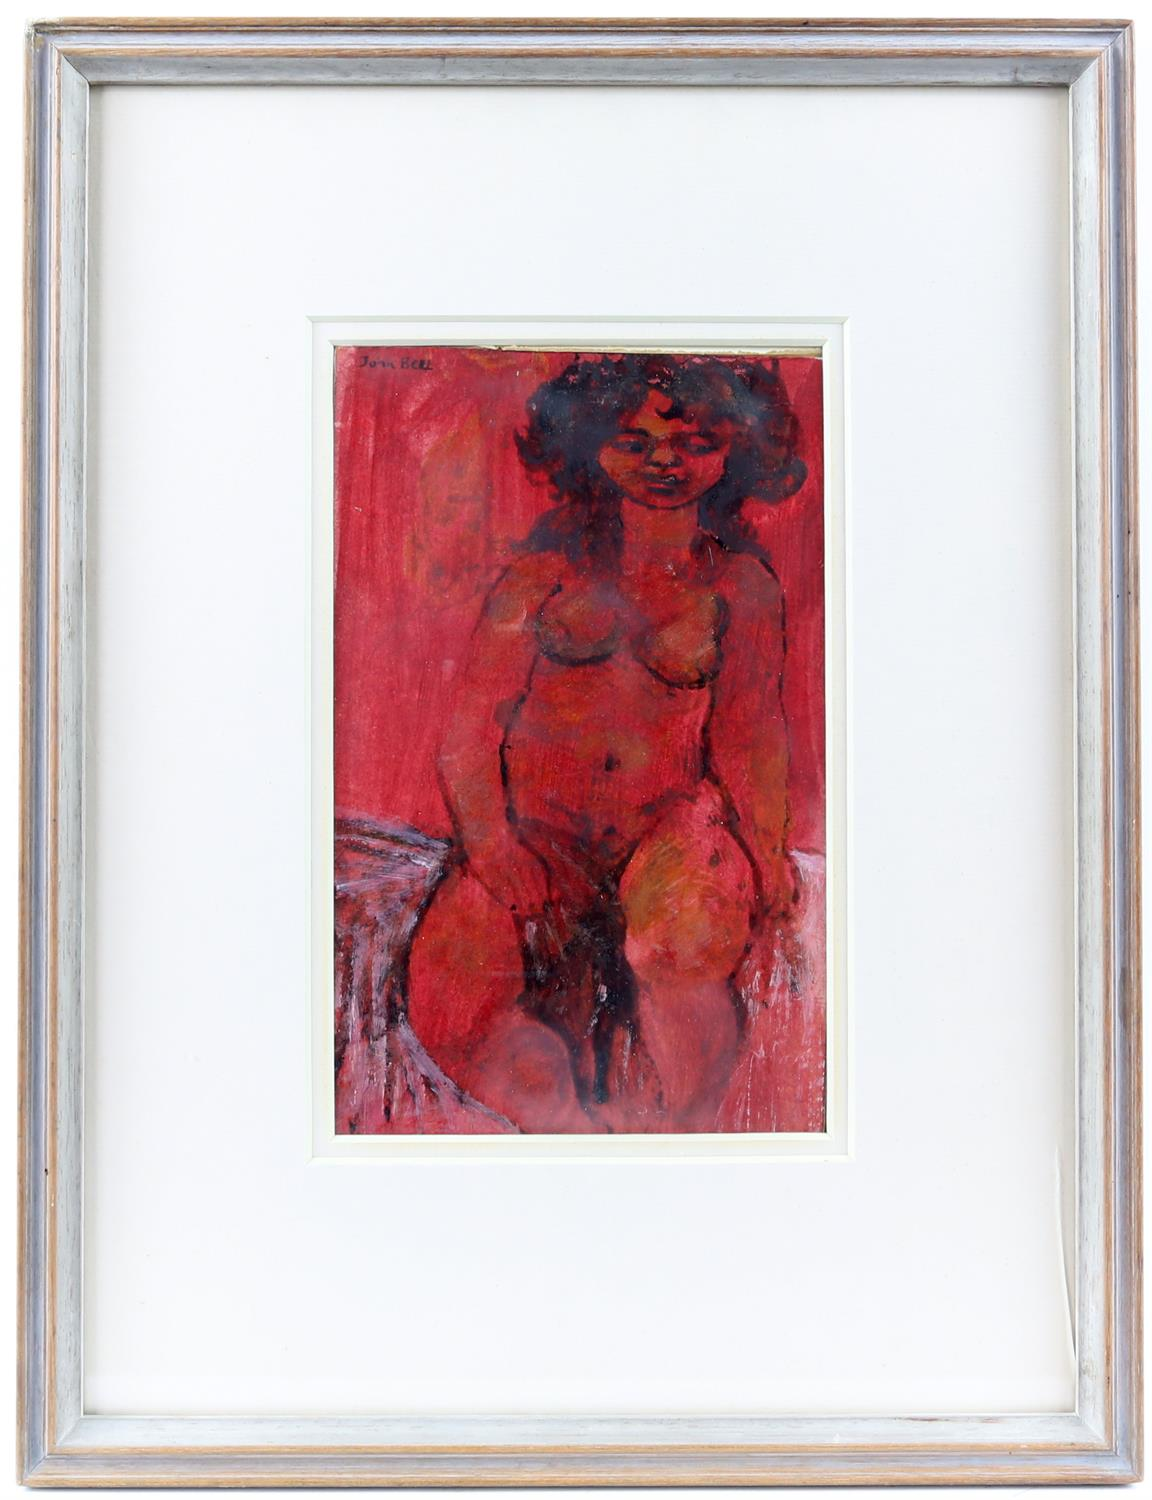 John Bell, nude study. Watercolour and ink on paper. Signed top left. Framed and glazed. - Image 2 of 3